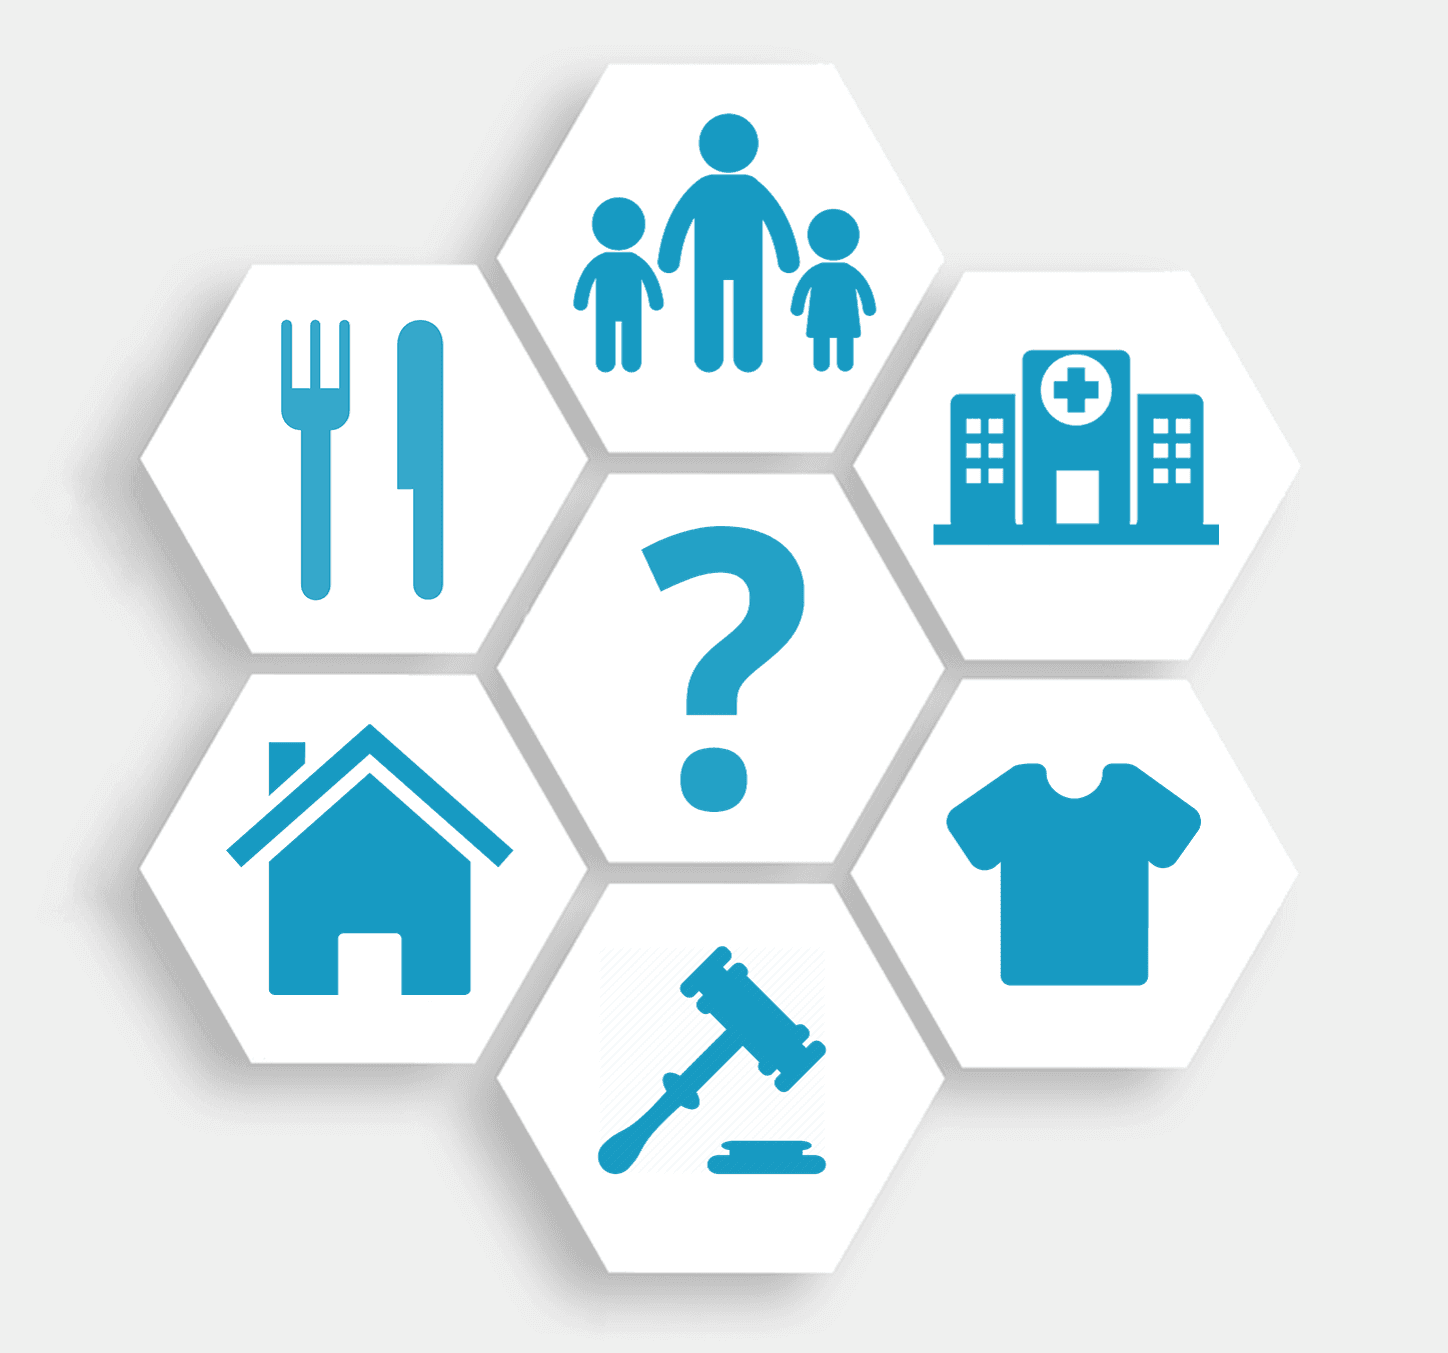 Graphic for Resource Days showing home, food, family, medical etc icons